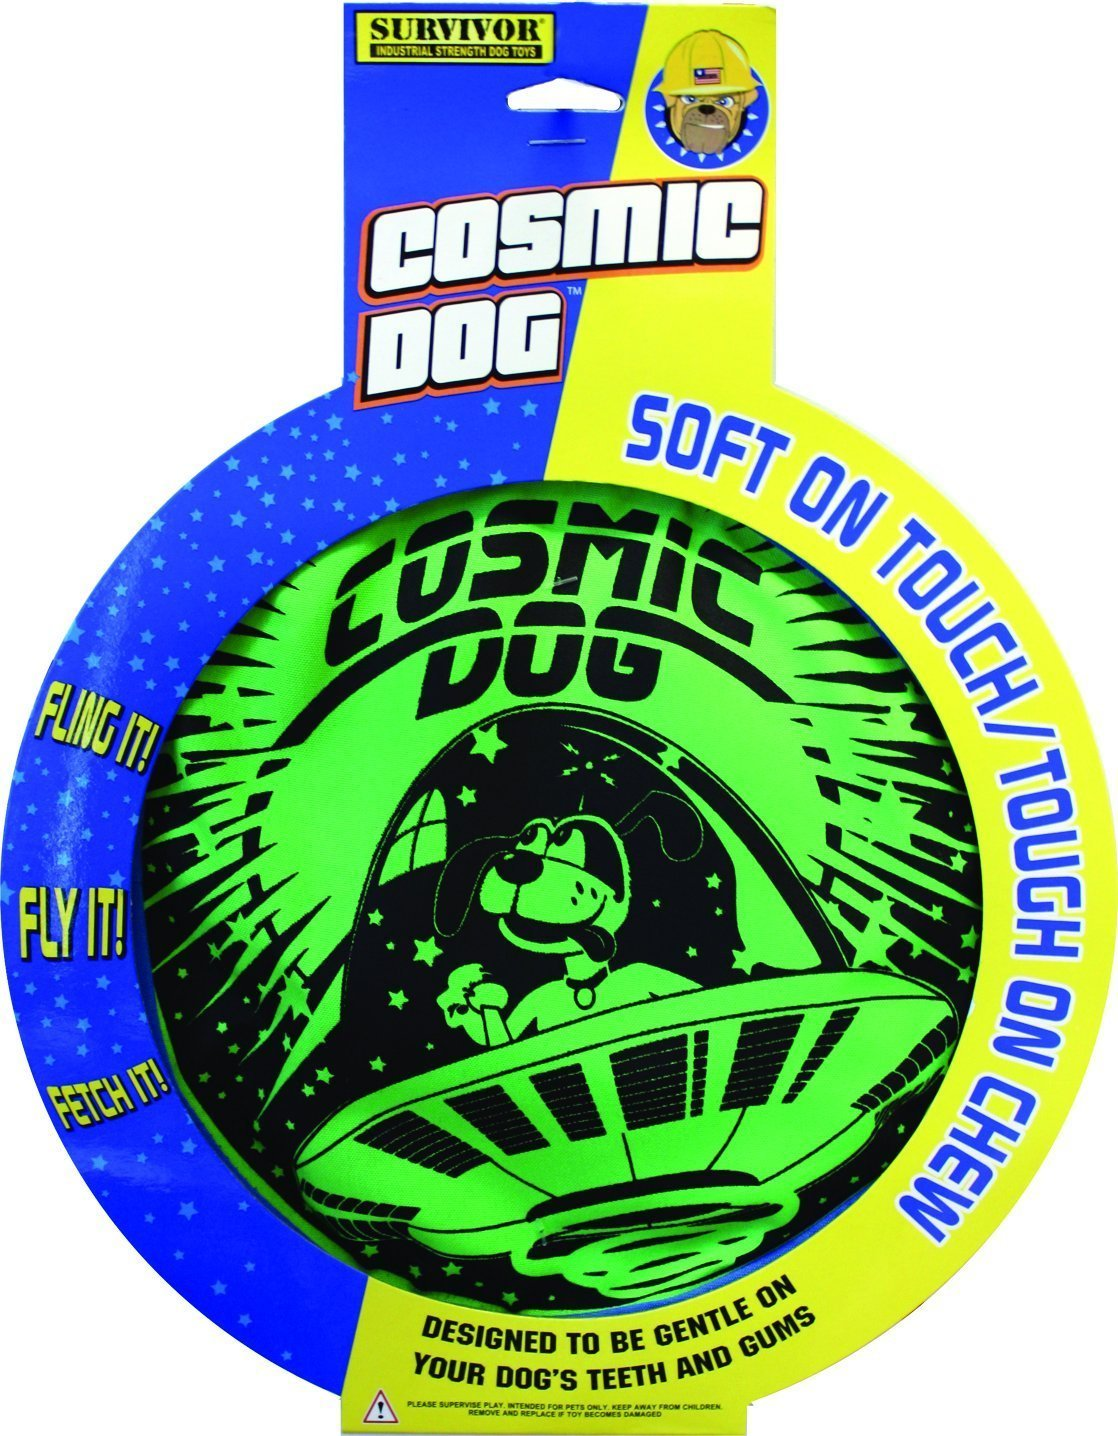 Cosmic Dog American comic-style flying disc (Frisbee) [parallel import goods]